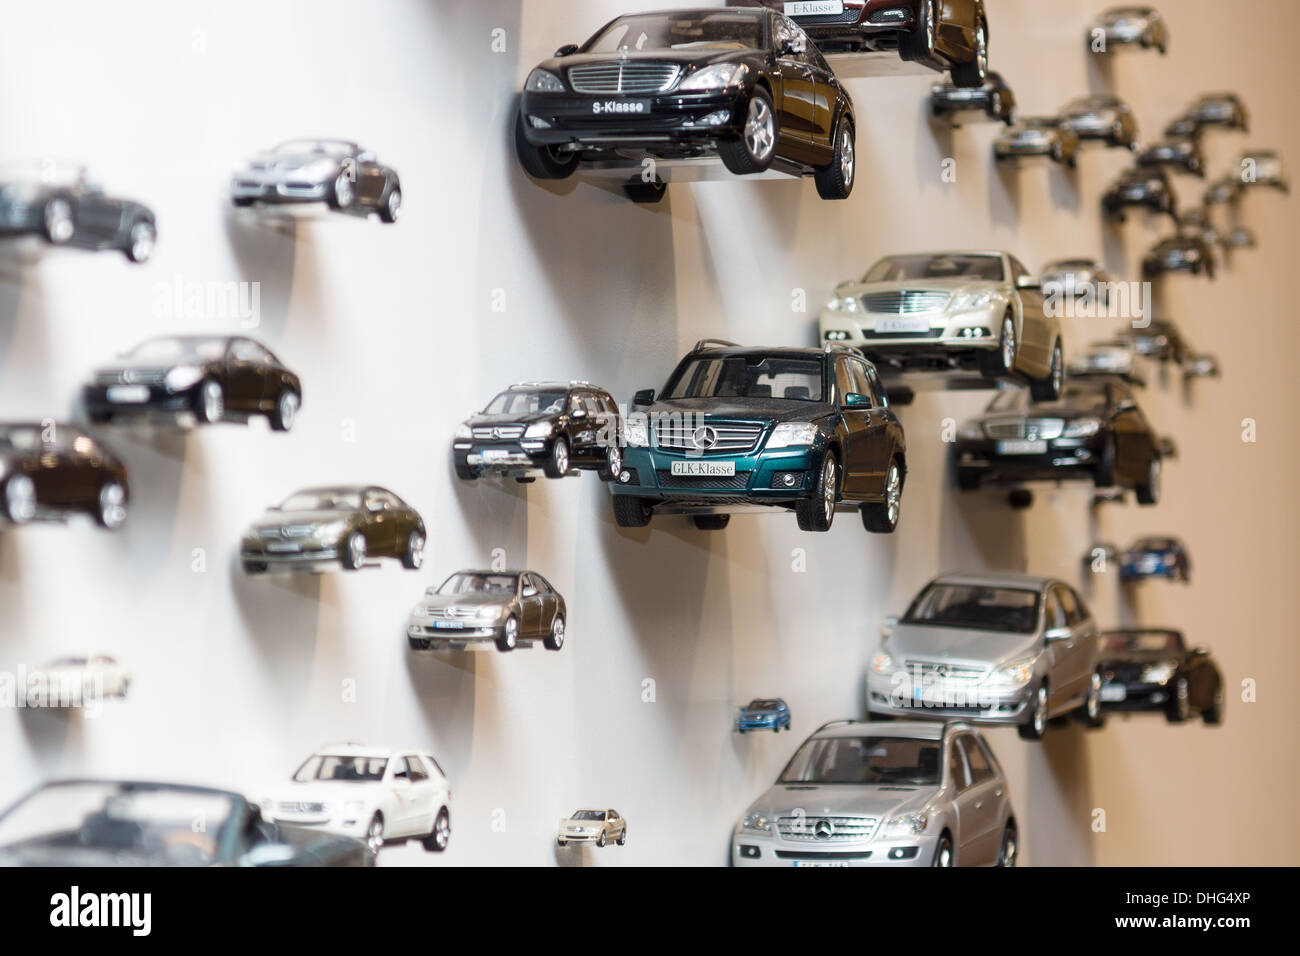 BERLIN - NOVEMBER 03: Various toy cars Mercedes Benz. Background., November 3, 2013 in Berlin, Germany. Stock Photo